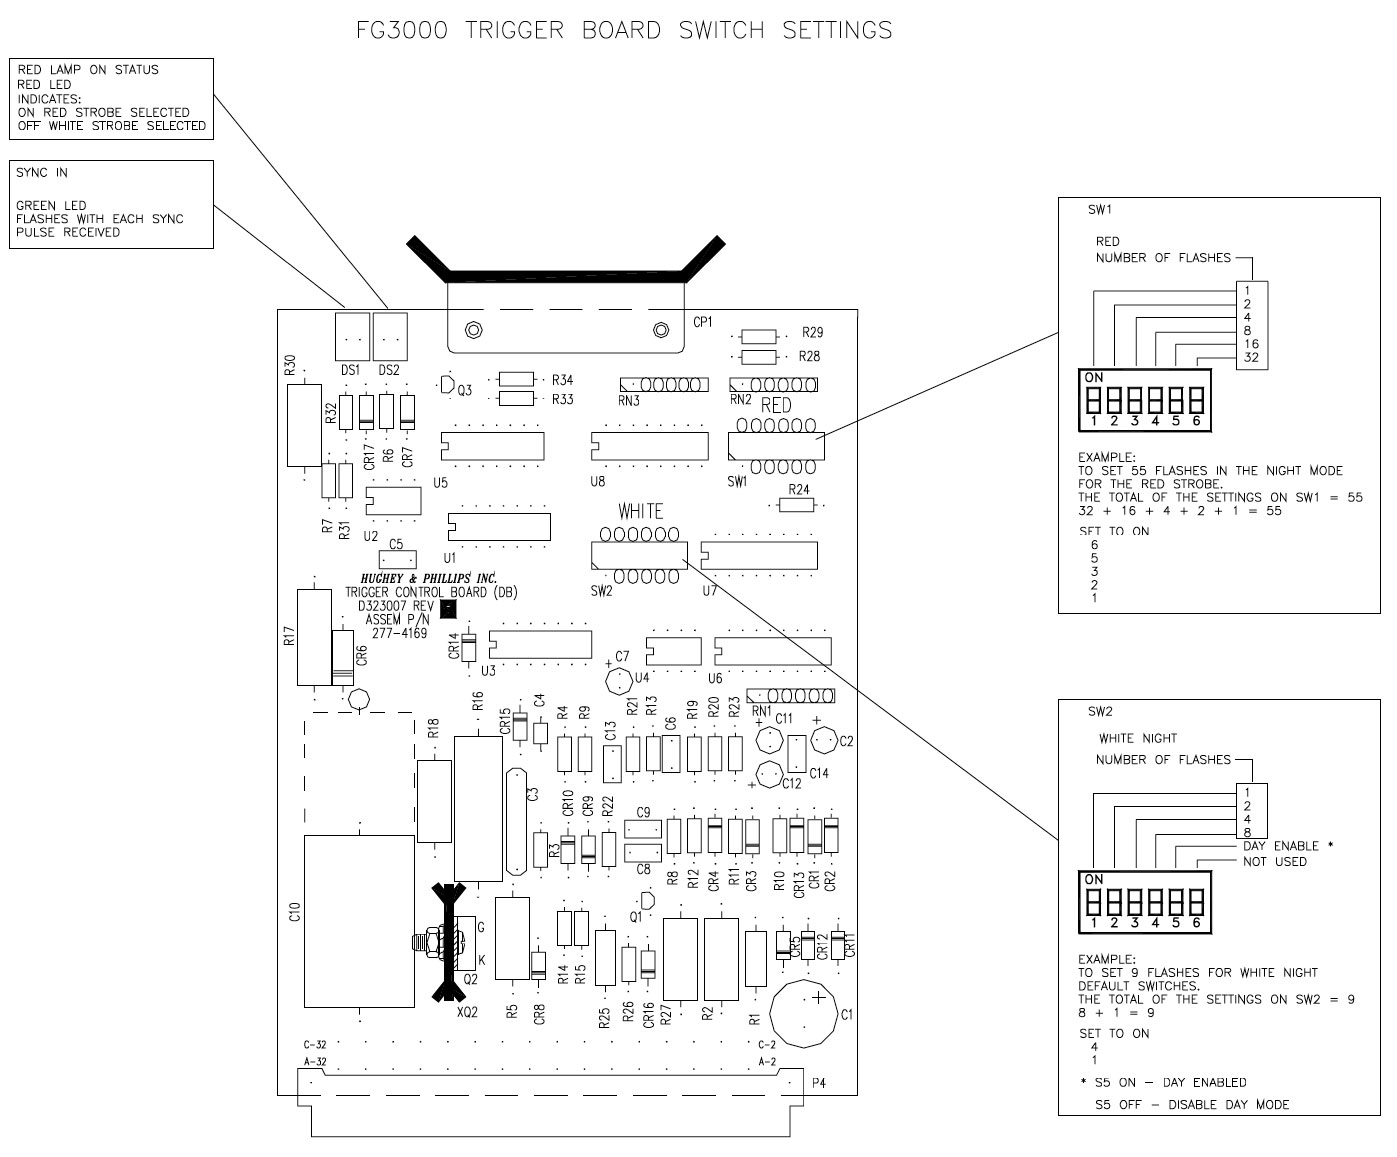 Troubleshooting Guide For Fg3000 Dual Medium Intensity Lighting Daisy Chain Light Fixture Wiring Diagram Figure 6 Trigger Control Detail